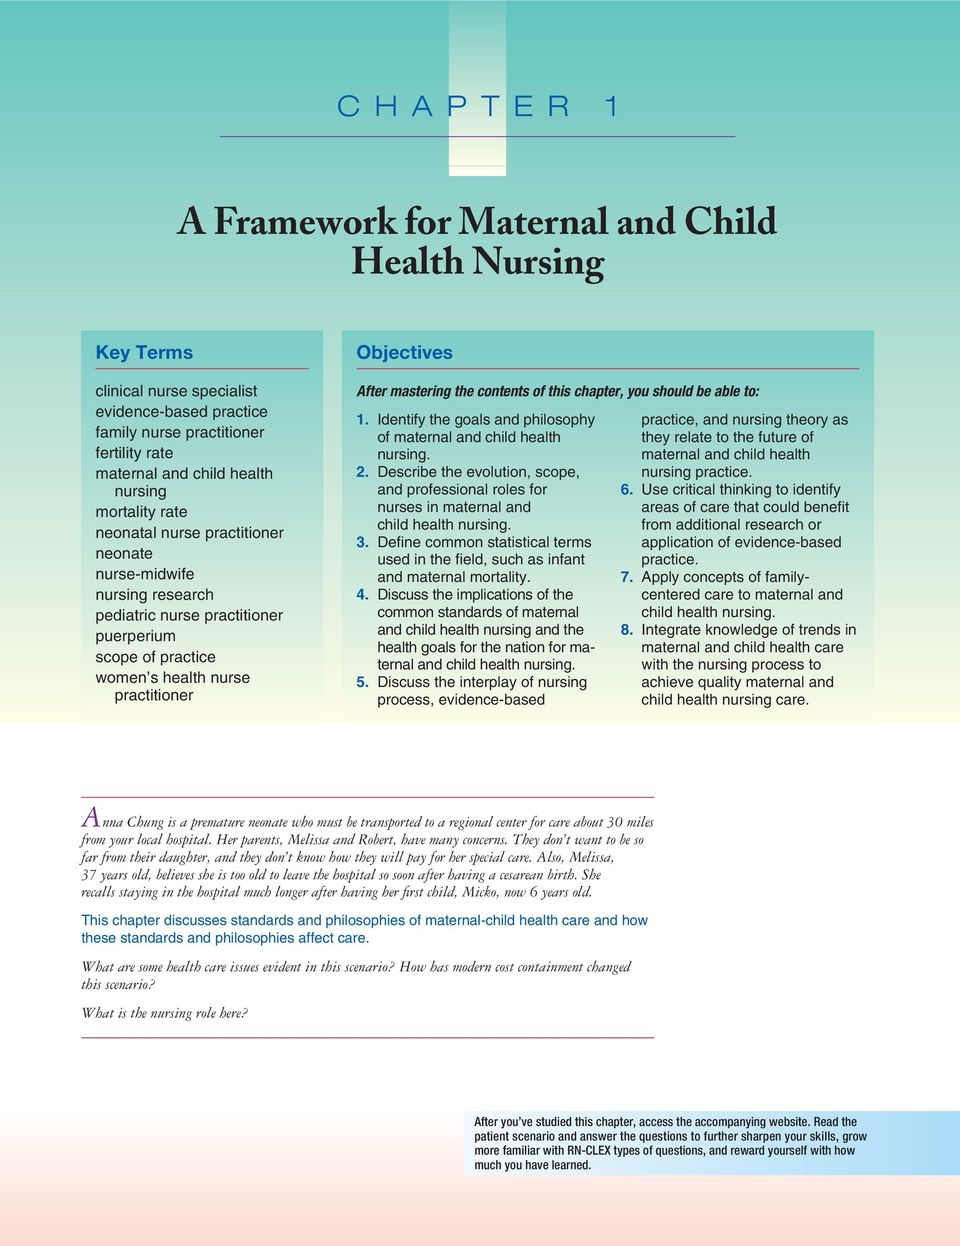 mastering the contents of this chapter, you should be able to: 1. Identify the goals and philosophy of maternal and child health nursing. 2.